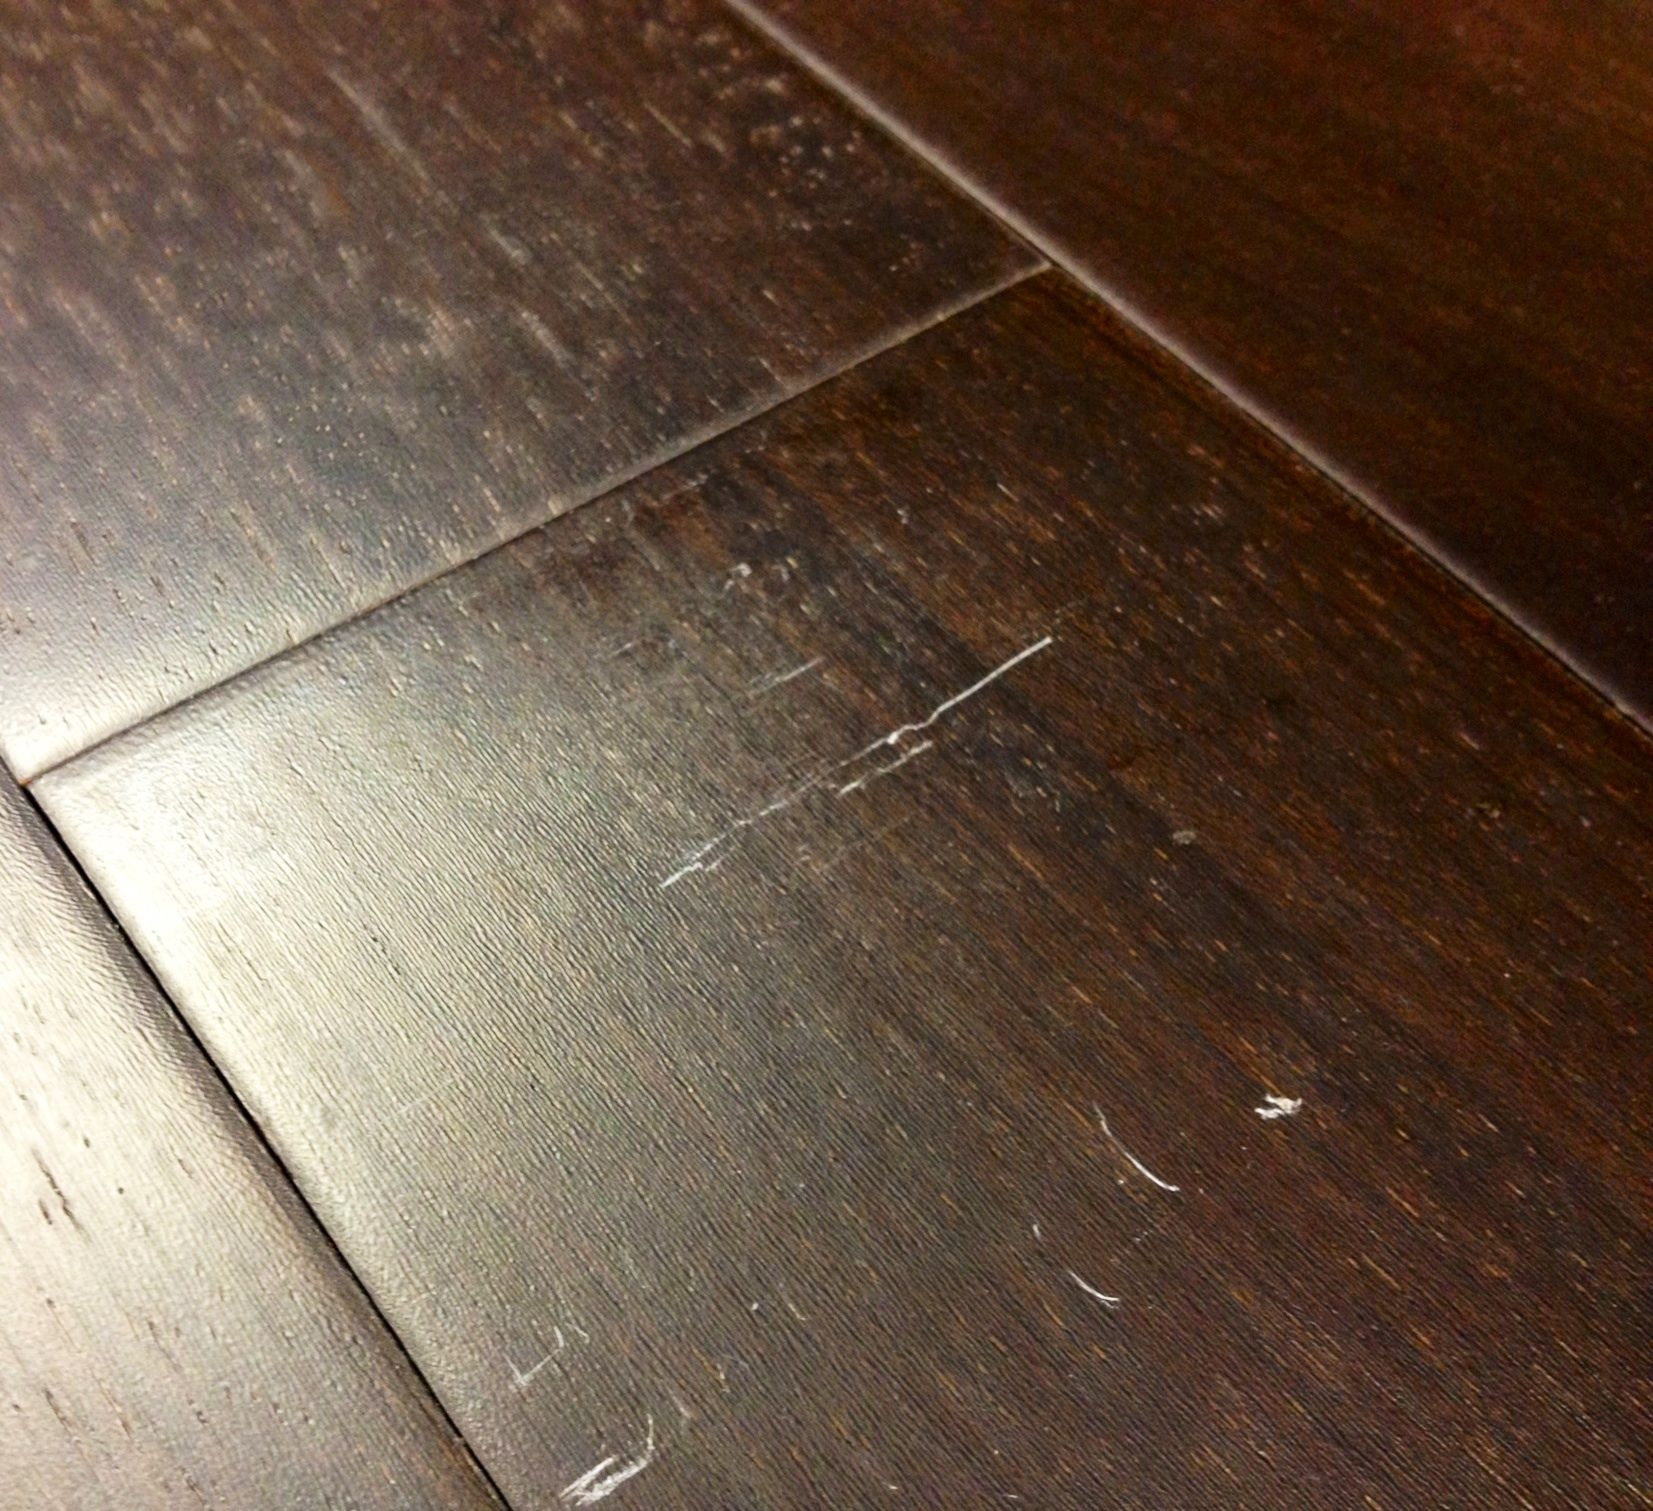 Selecting The Correct Finish Oil Versus Urethane Woodwright Hardwood Floor Company